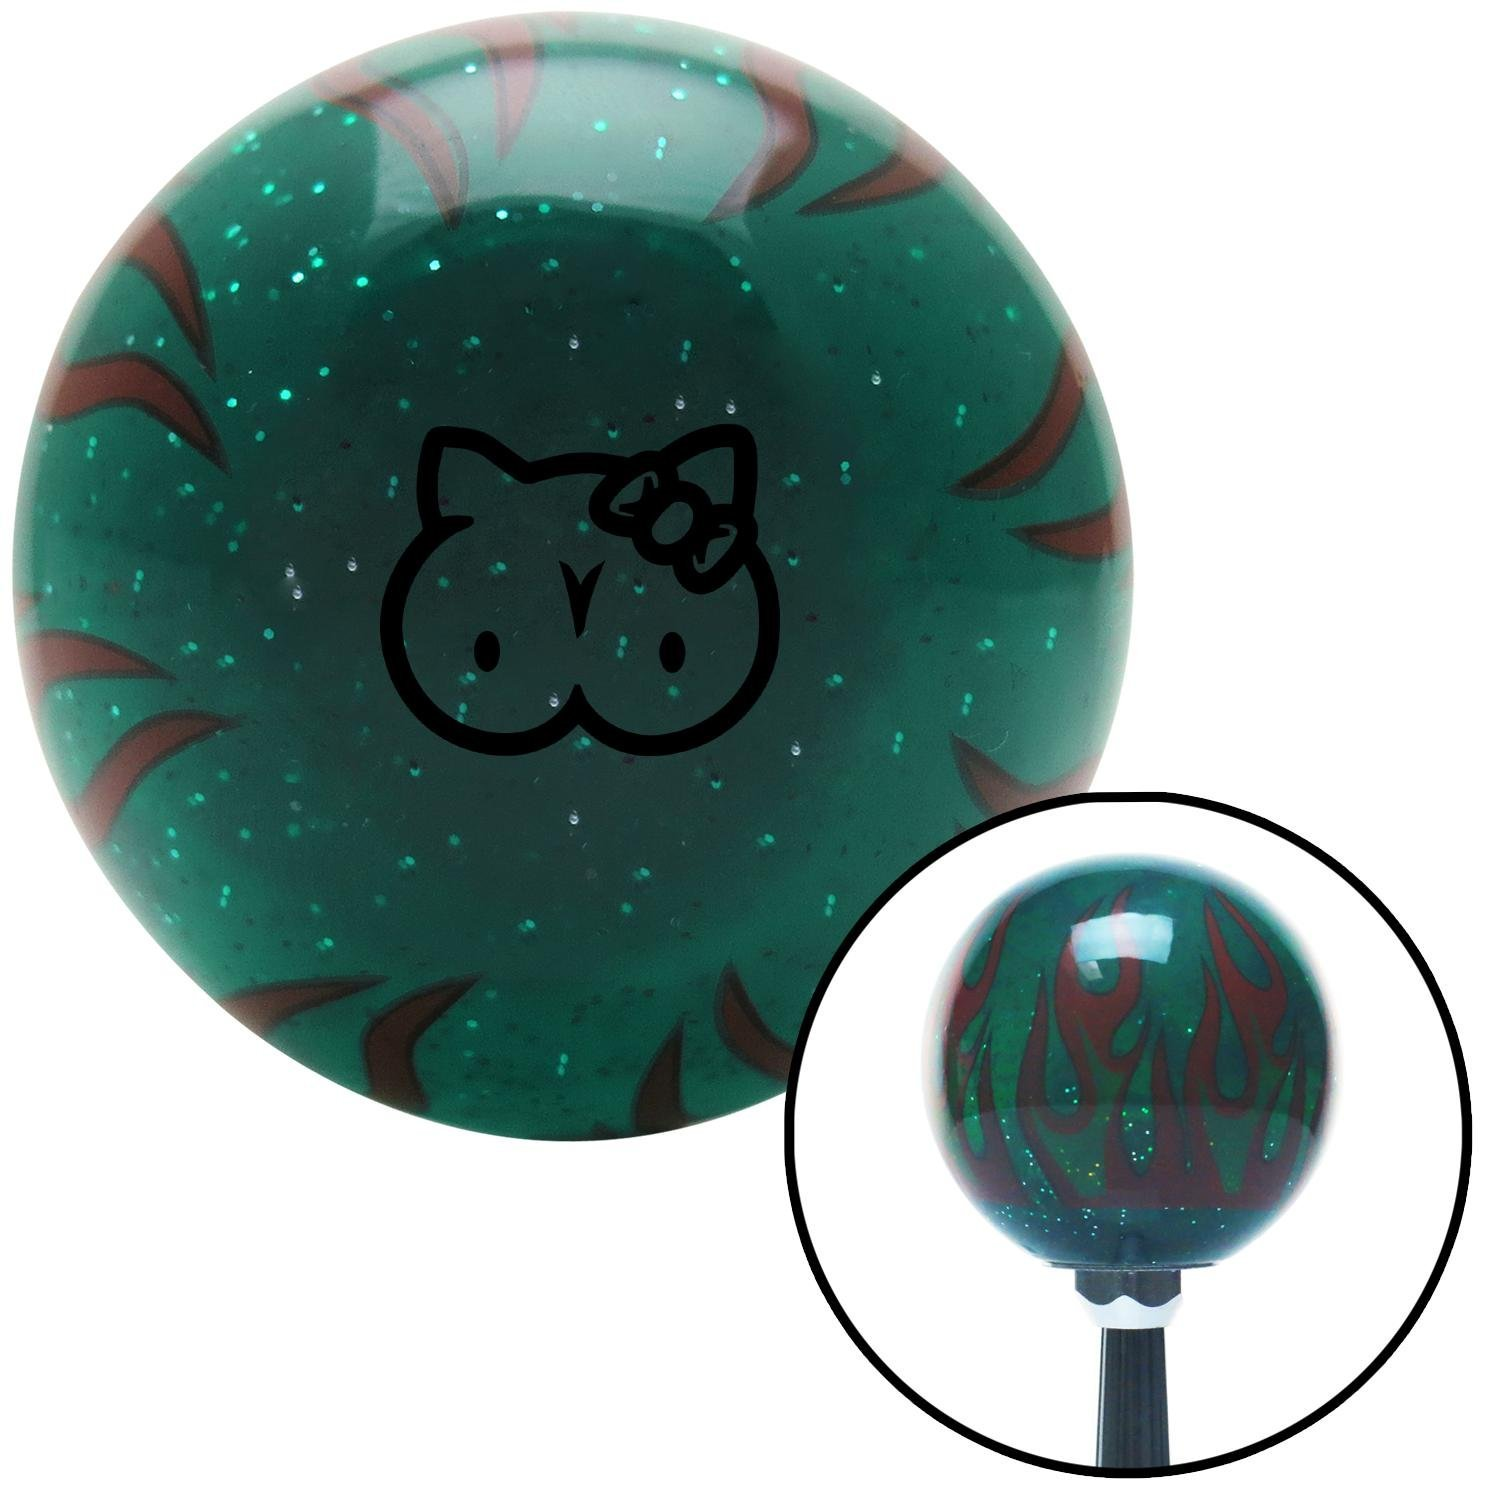 American Shifter 300030 Shift Knob Black Hello Titty Green Flame Metal Flake with M16 x 1.5 Insert